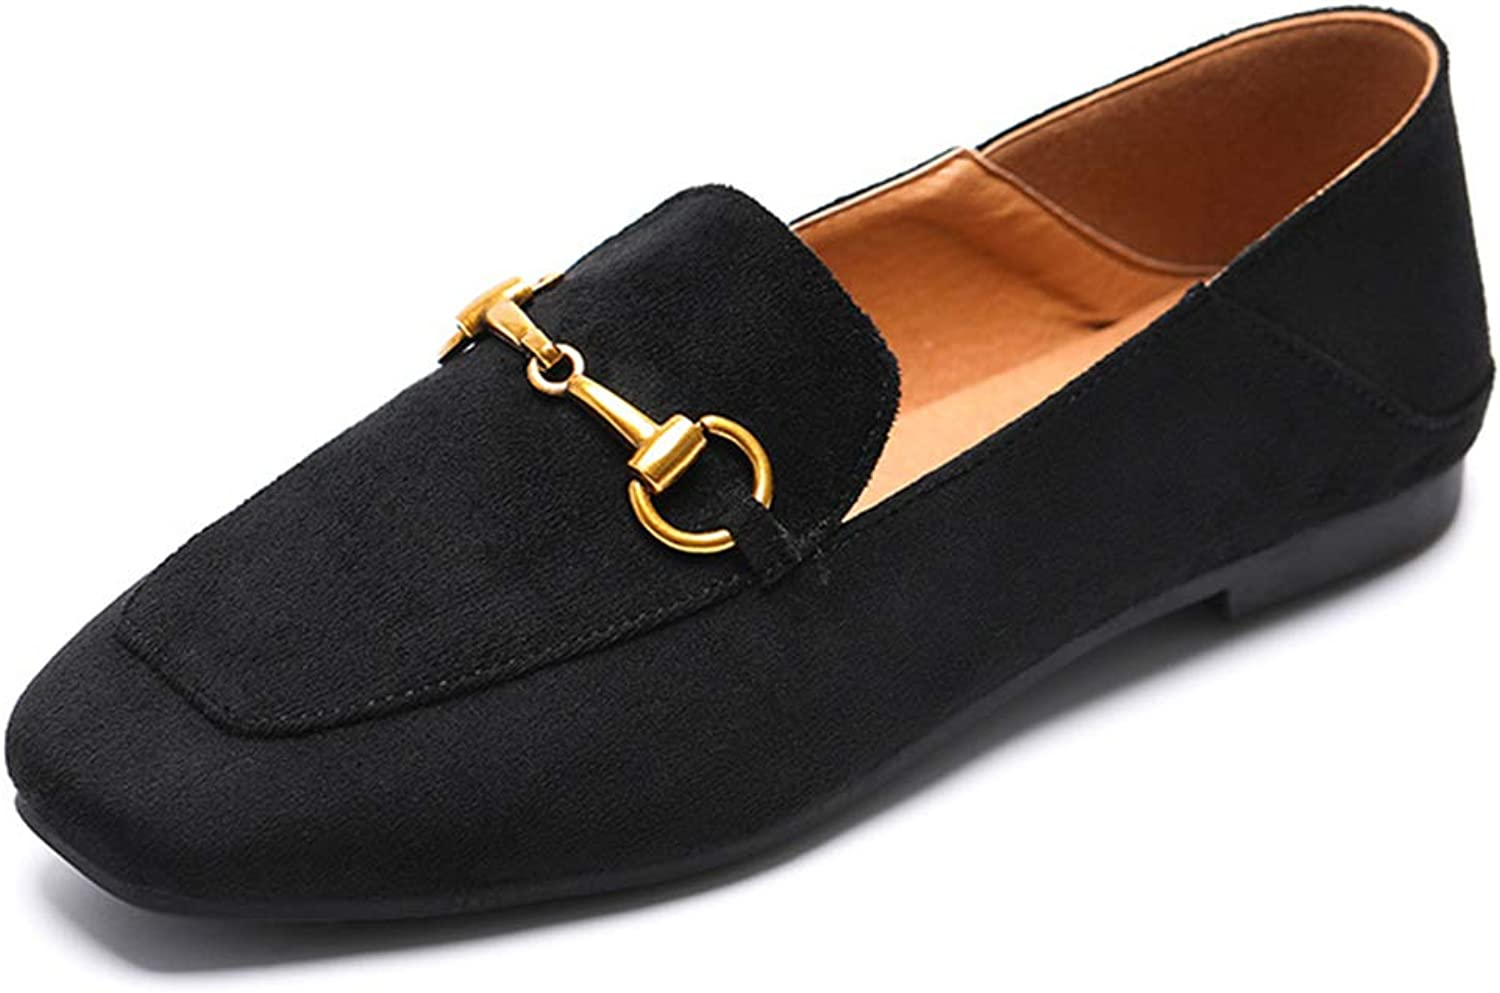 Kyle Walsh Pa Women Slip-on Flats, Square Toe Casual Slim Vintage Moccasins, Female Lazy shoes